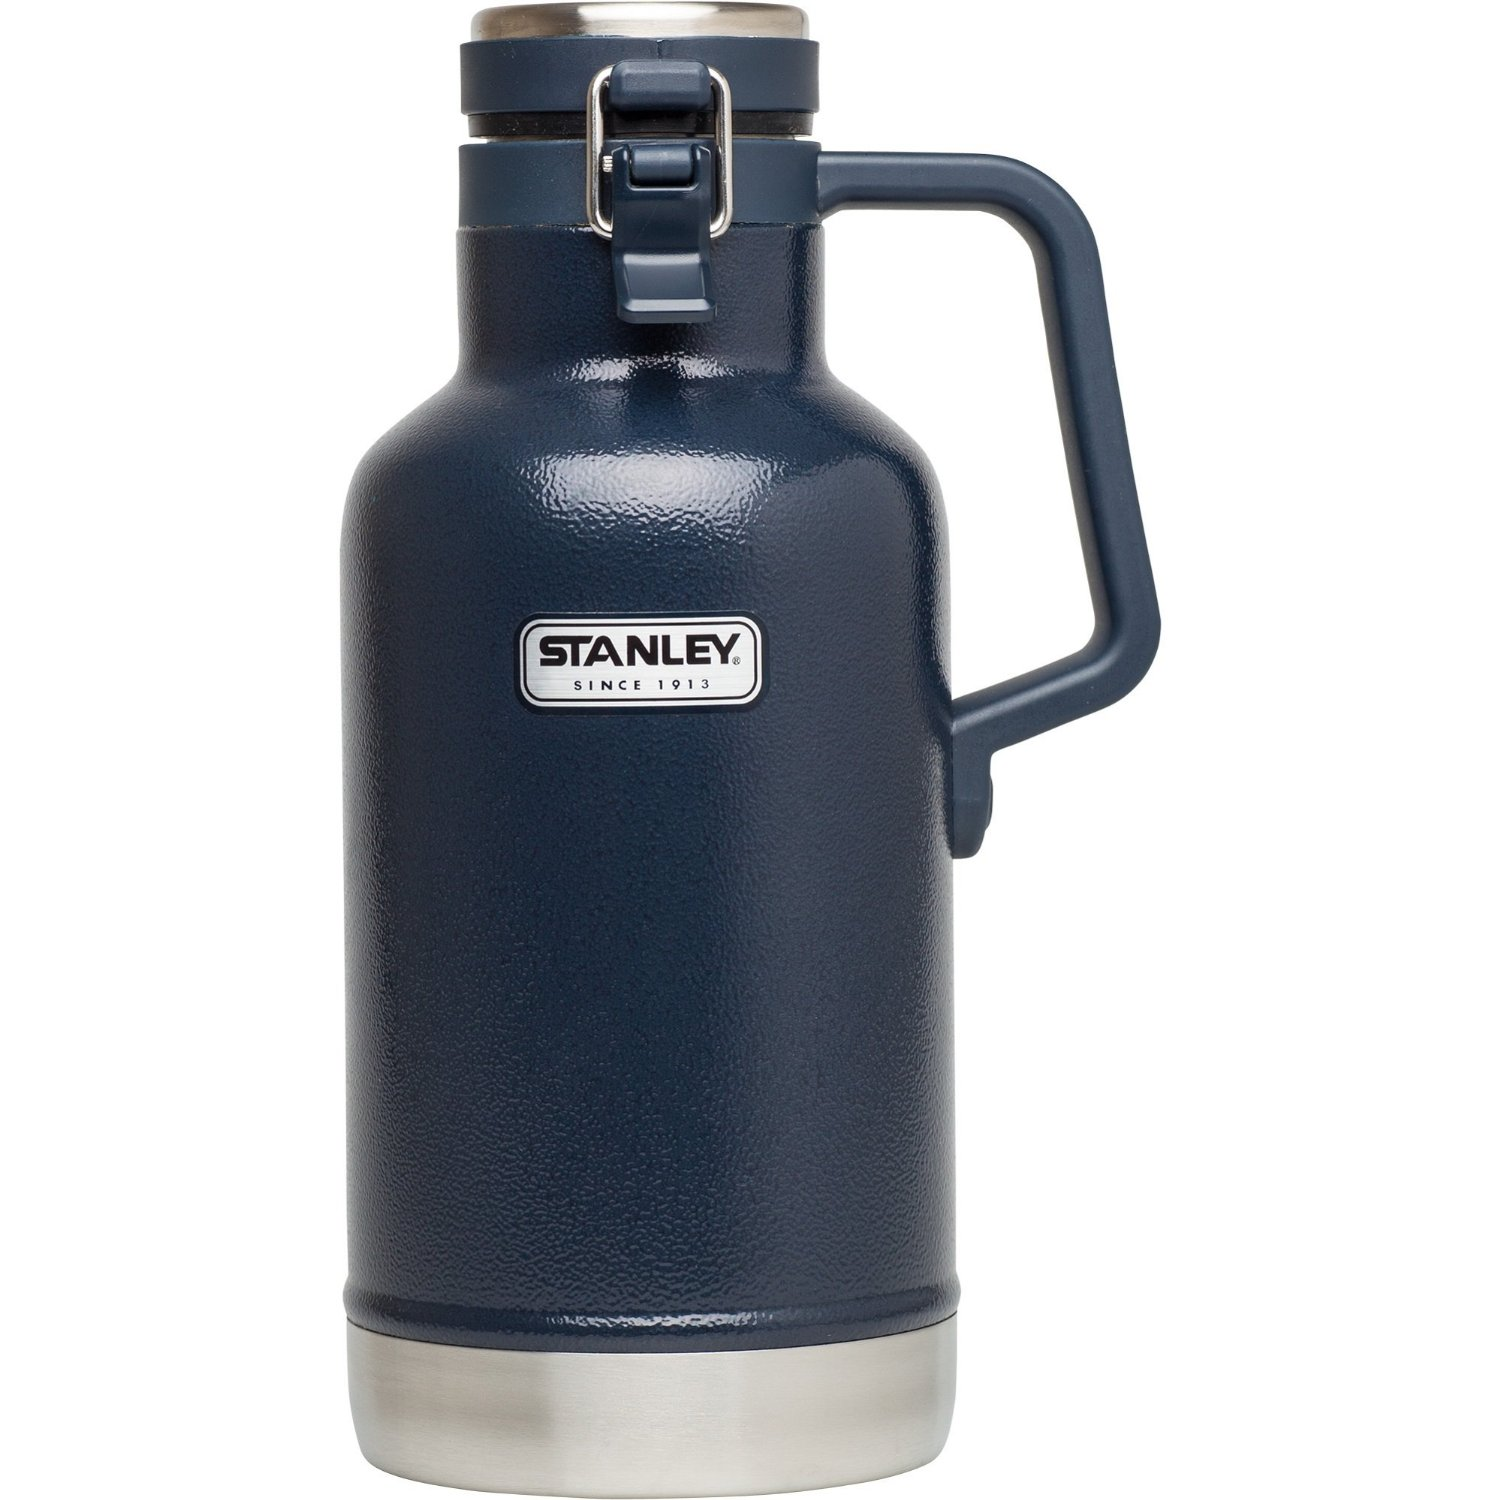 Stanley Classic Naturally BPA-Free Vacuum Insulated Growler with Heavy-Duty Handle – Available in 3 Colors